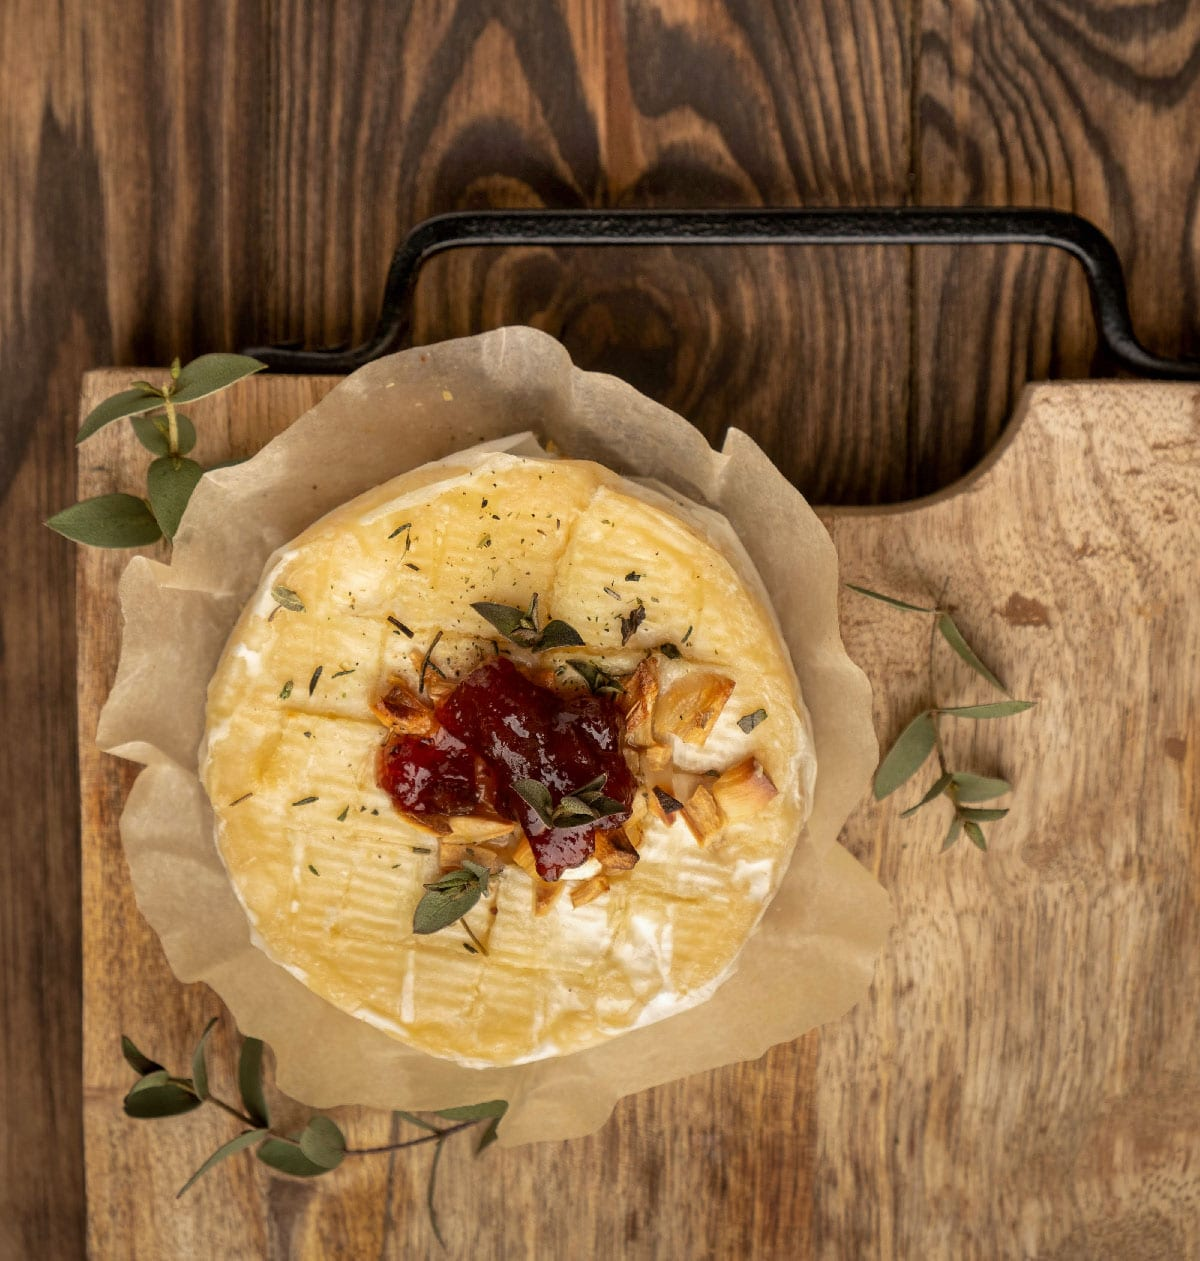 Baked,Camembert,Cheese,,Wooden,Background,,Copy,Space,,Top,View